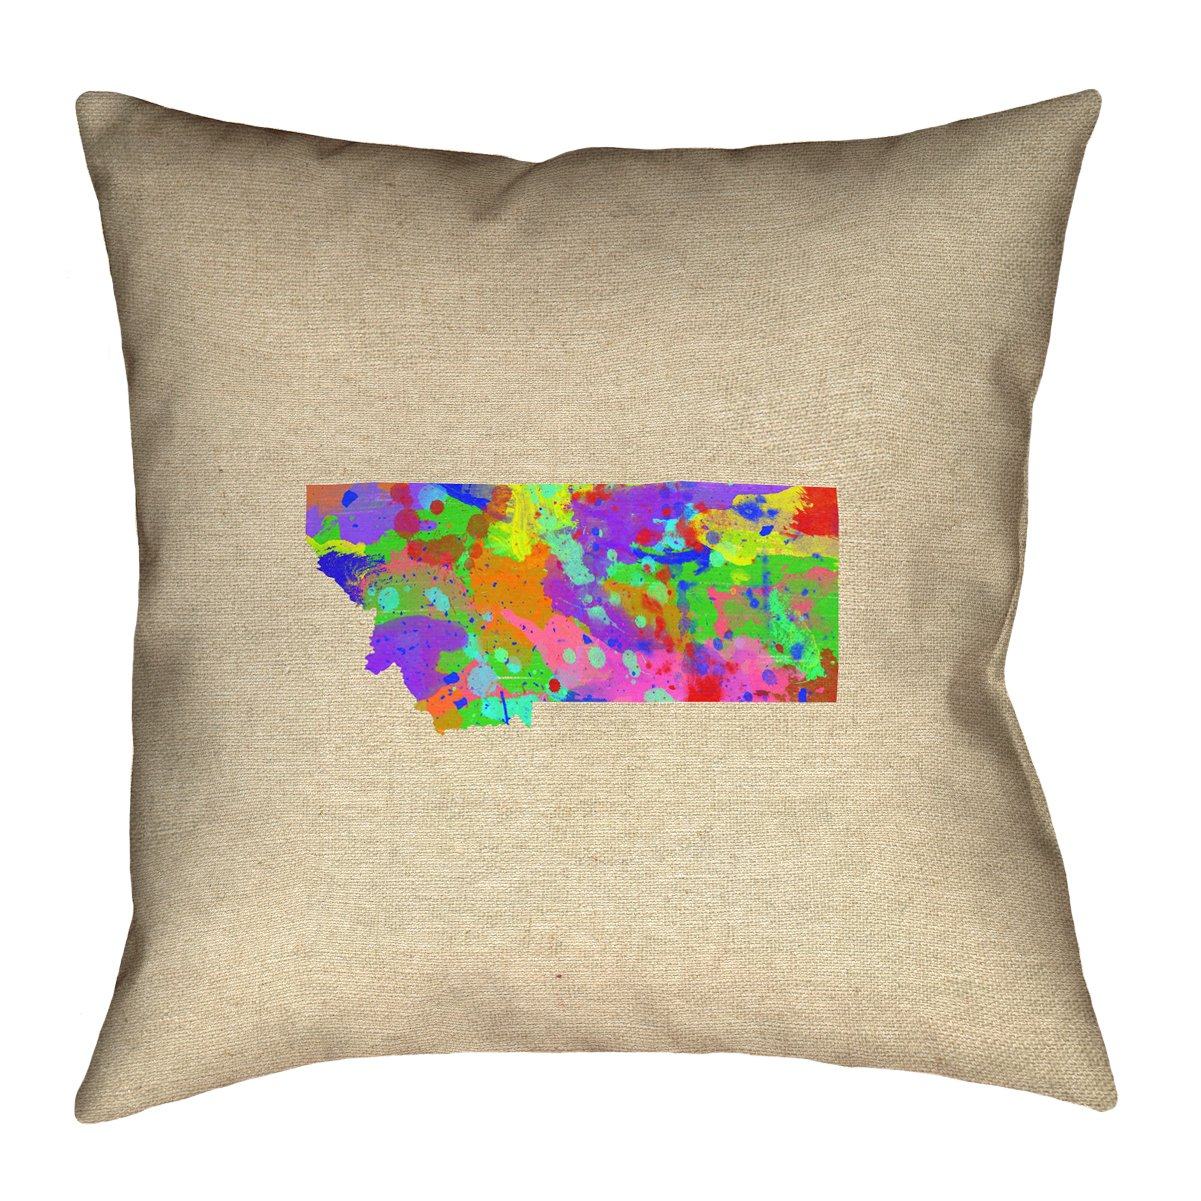 ArtVerse Katelyn Smith Montana Watercolor 14' x 14' Pillow-Faux Linen (Updated Fabric) Double Sided Print with Concealed Zipper & Insert